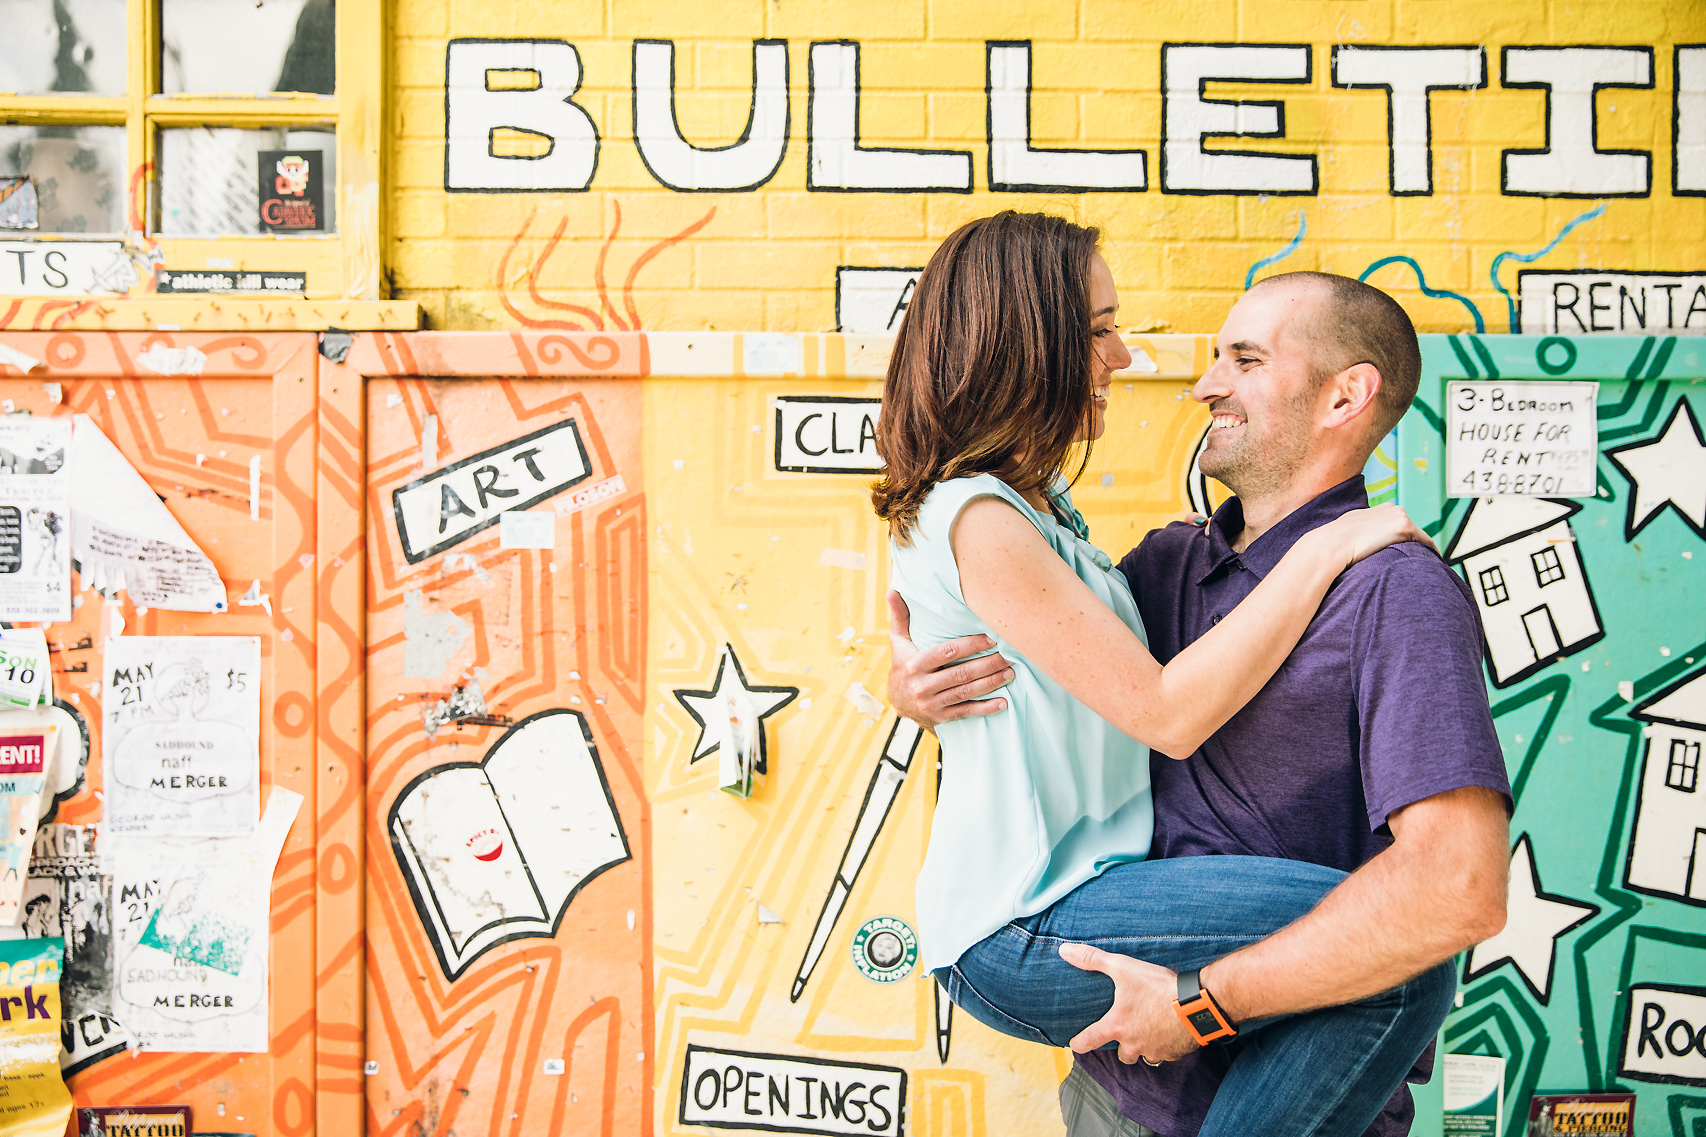 Engagement session in front of a bright painted wall at the University of Delaware